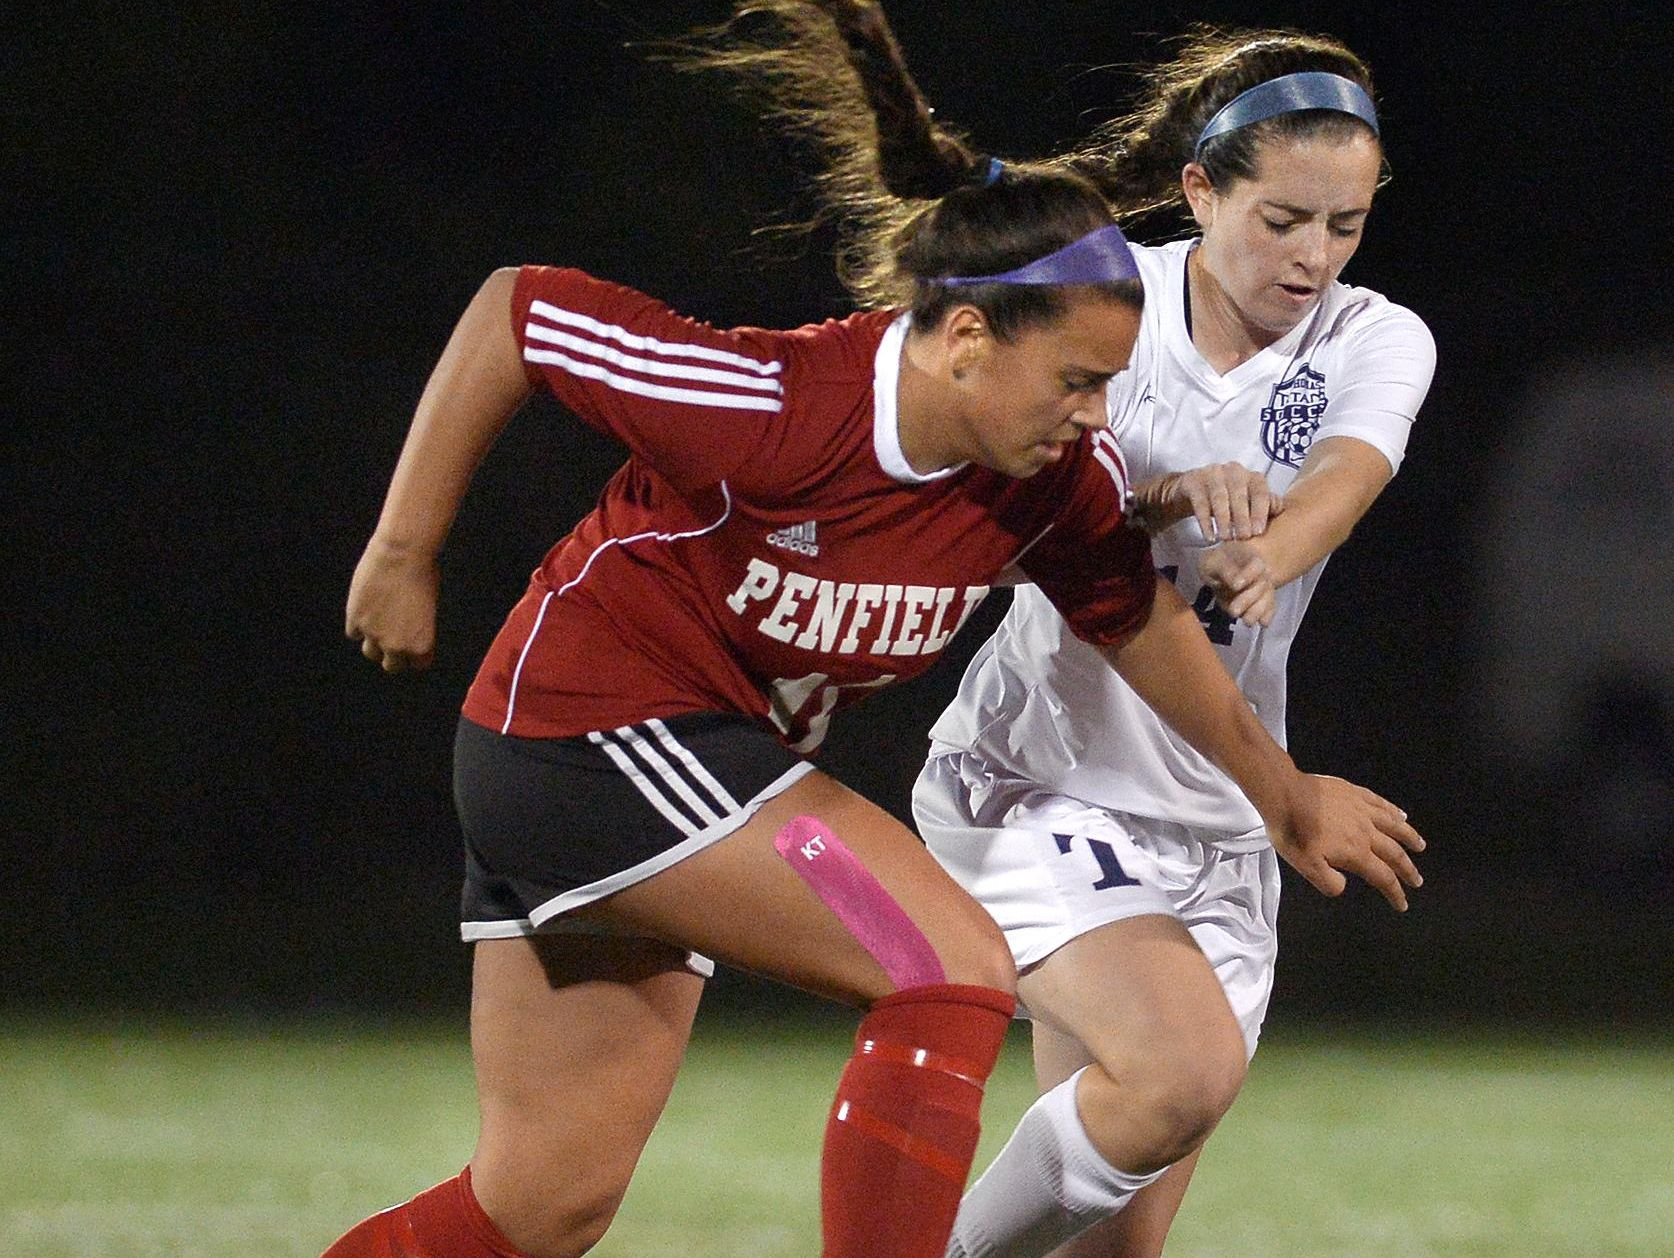 Penfield's Lauren Faillace, left, and Webster Thomas' Micaela Johnson vie for the ball.